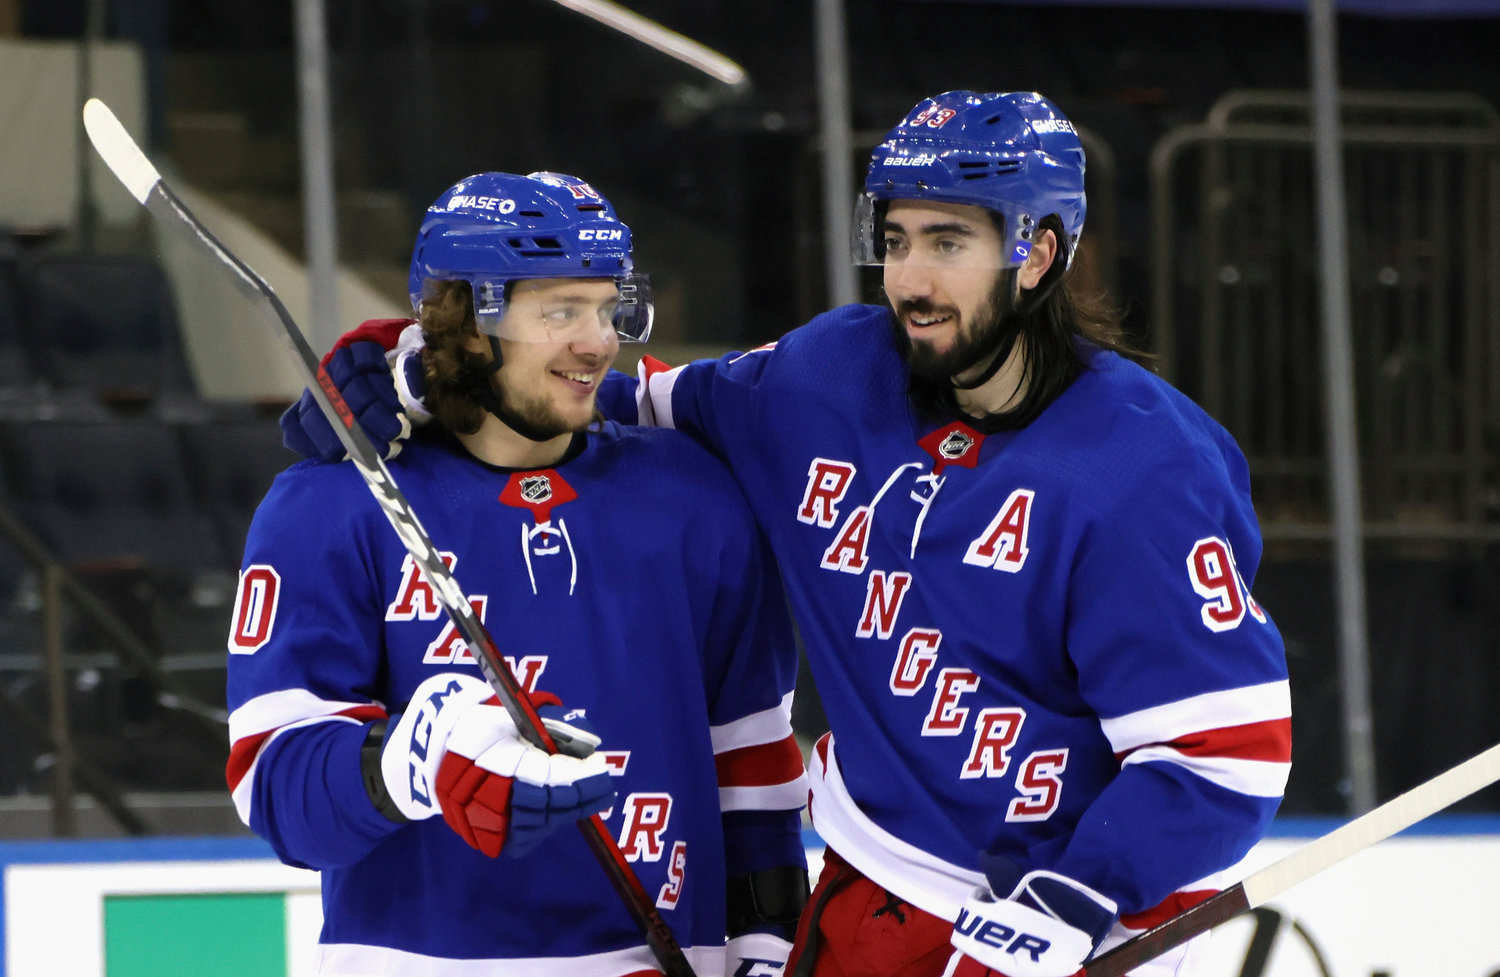 ALL SMILES — Rangers' Artemi Panarin, left, and Mika Zibanejad celebrate the team's 8-4 victory over the Penguins in an NHL game on Tuesday night in New York.